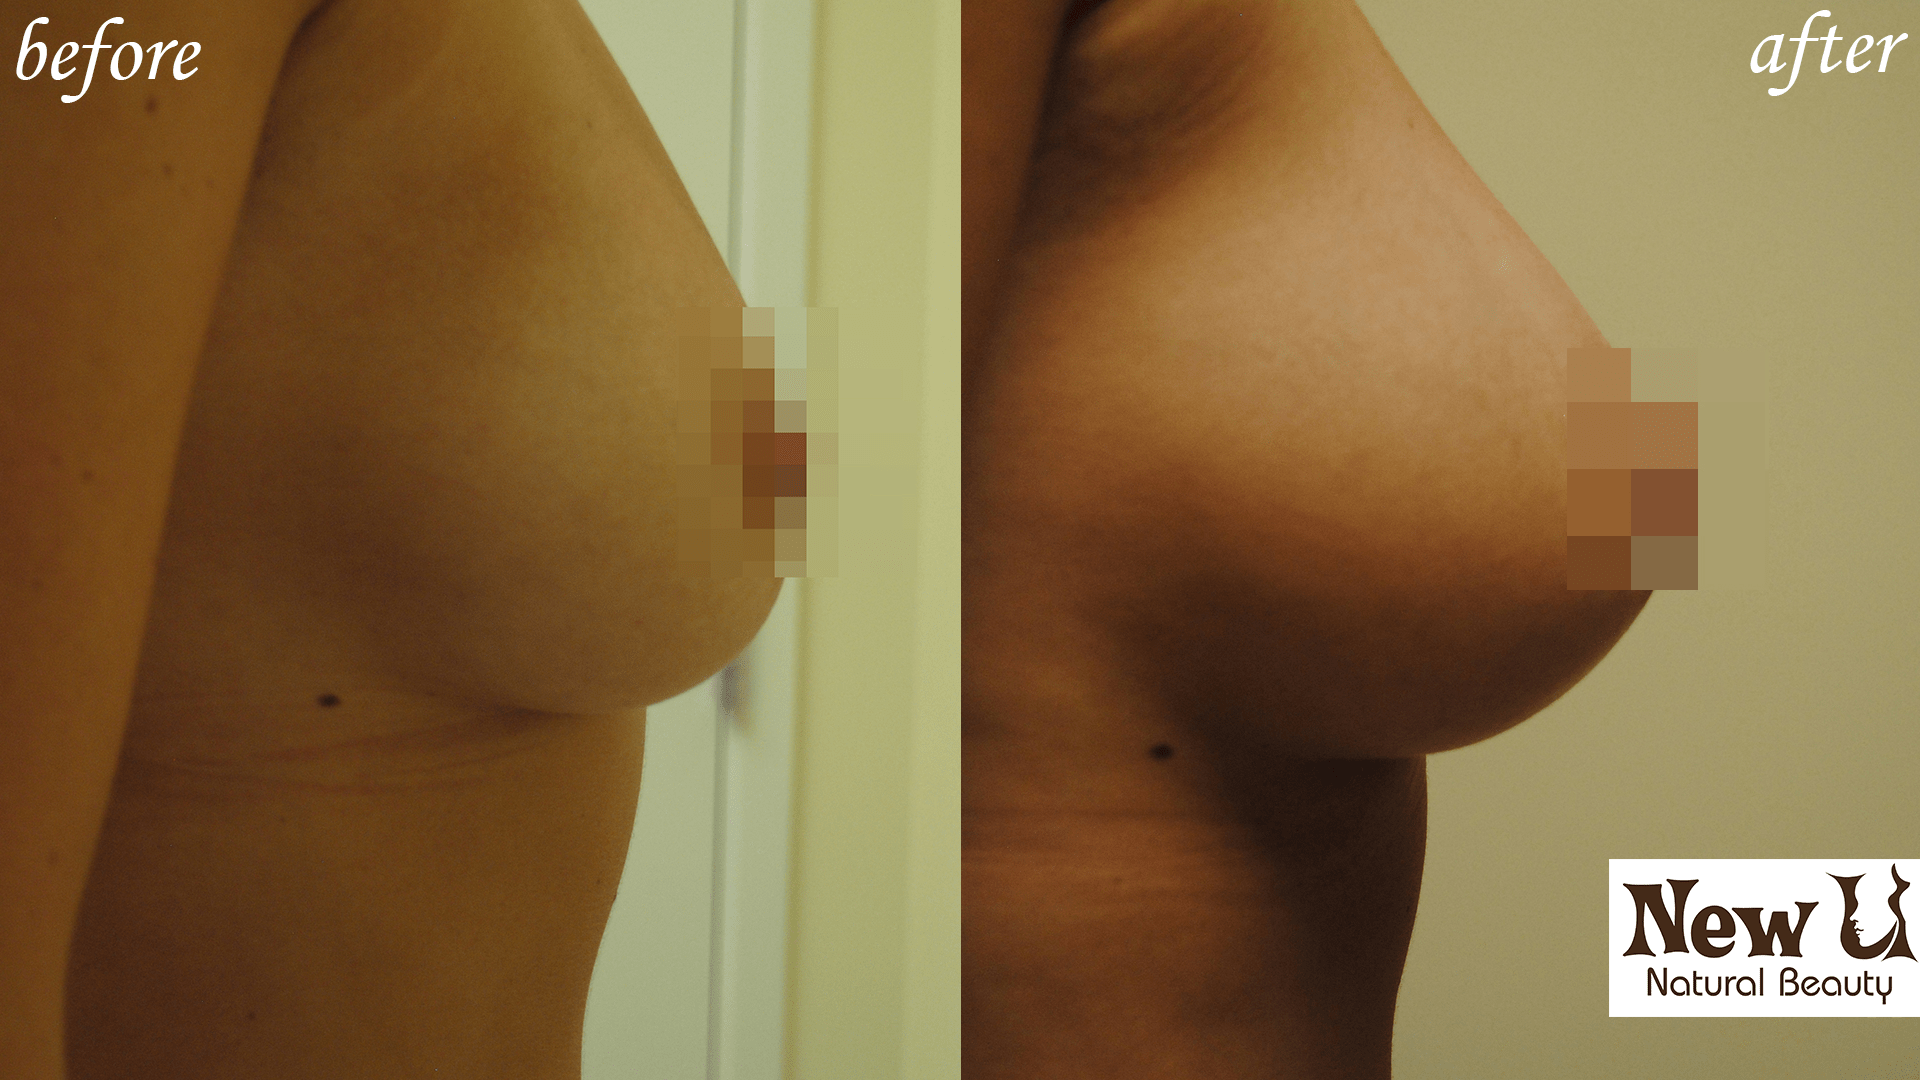 Breast Enhancement 2 Las Vegas Before and After